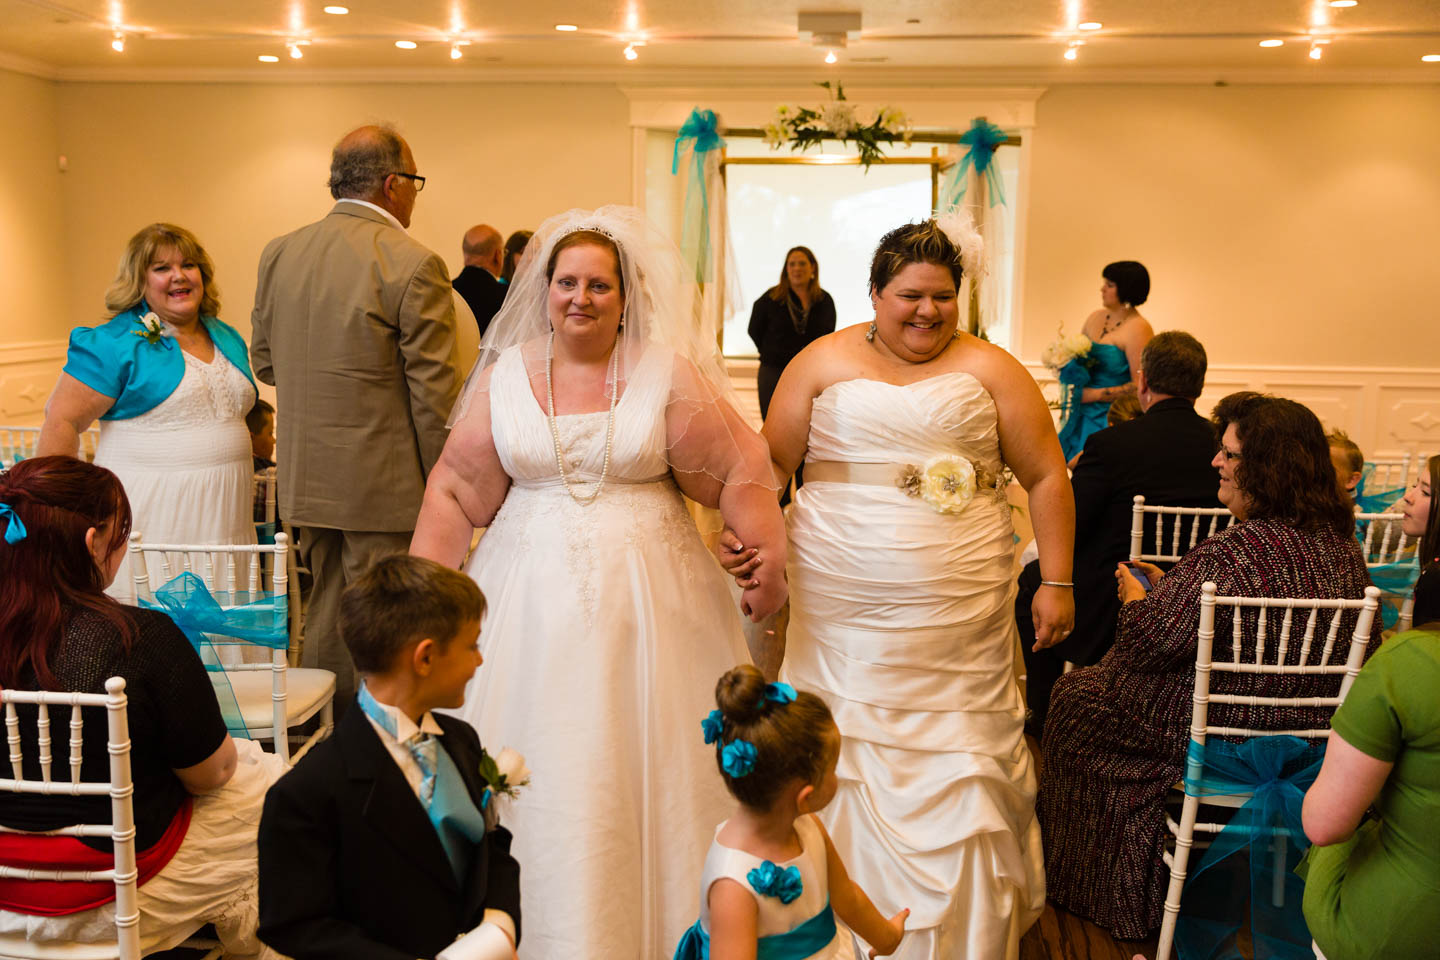 Brides walk down the aisle married